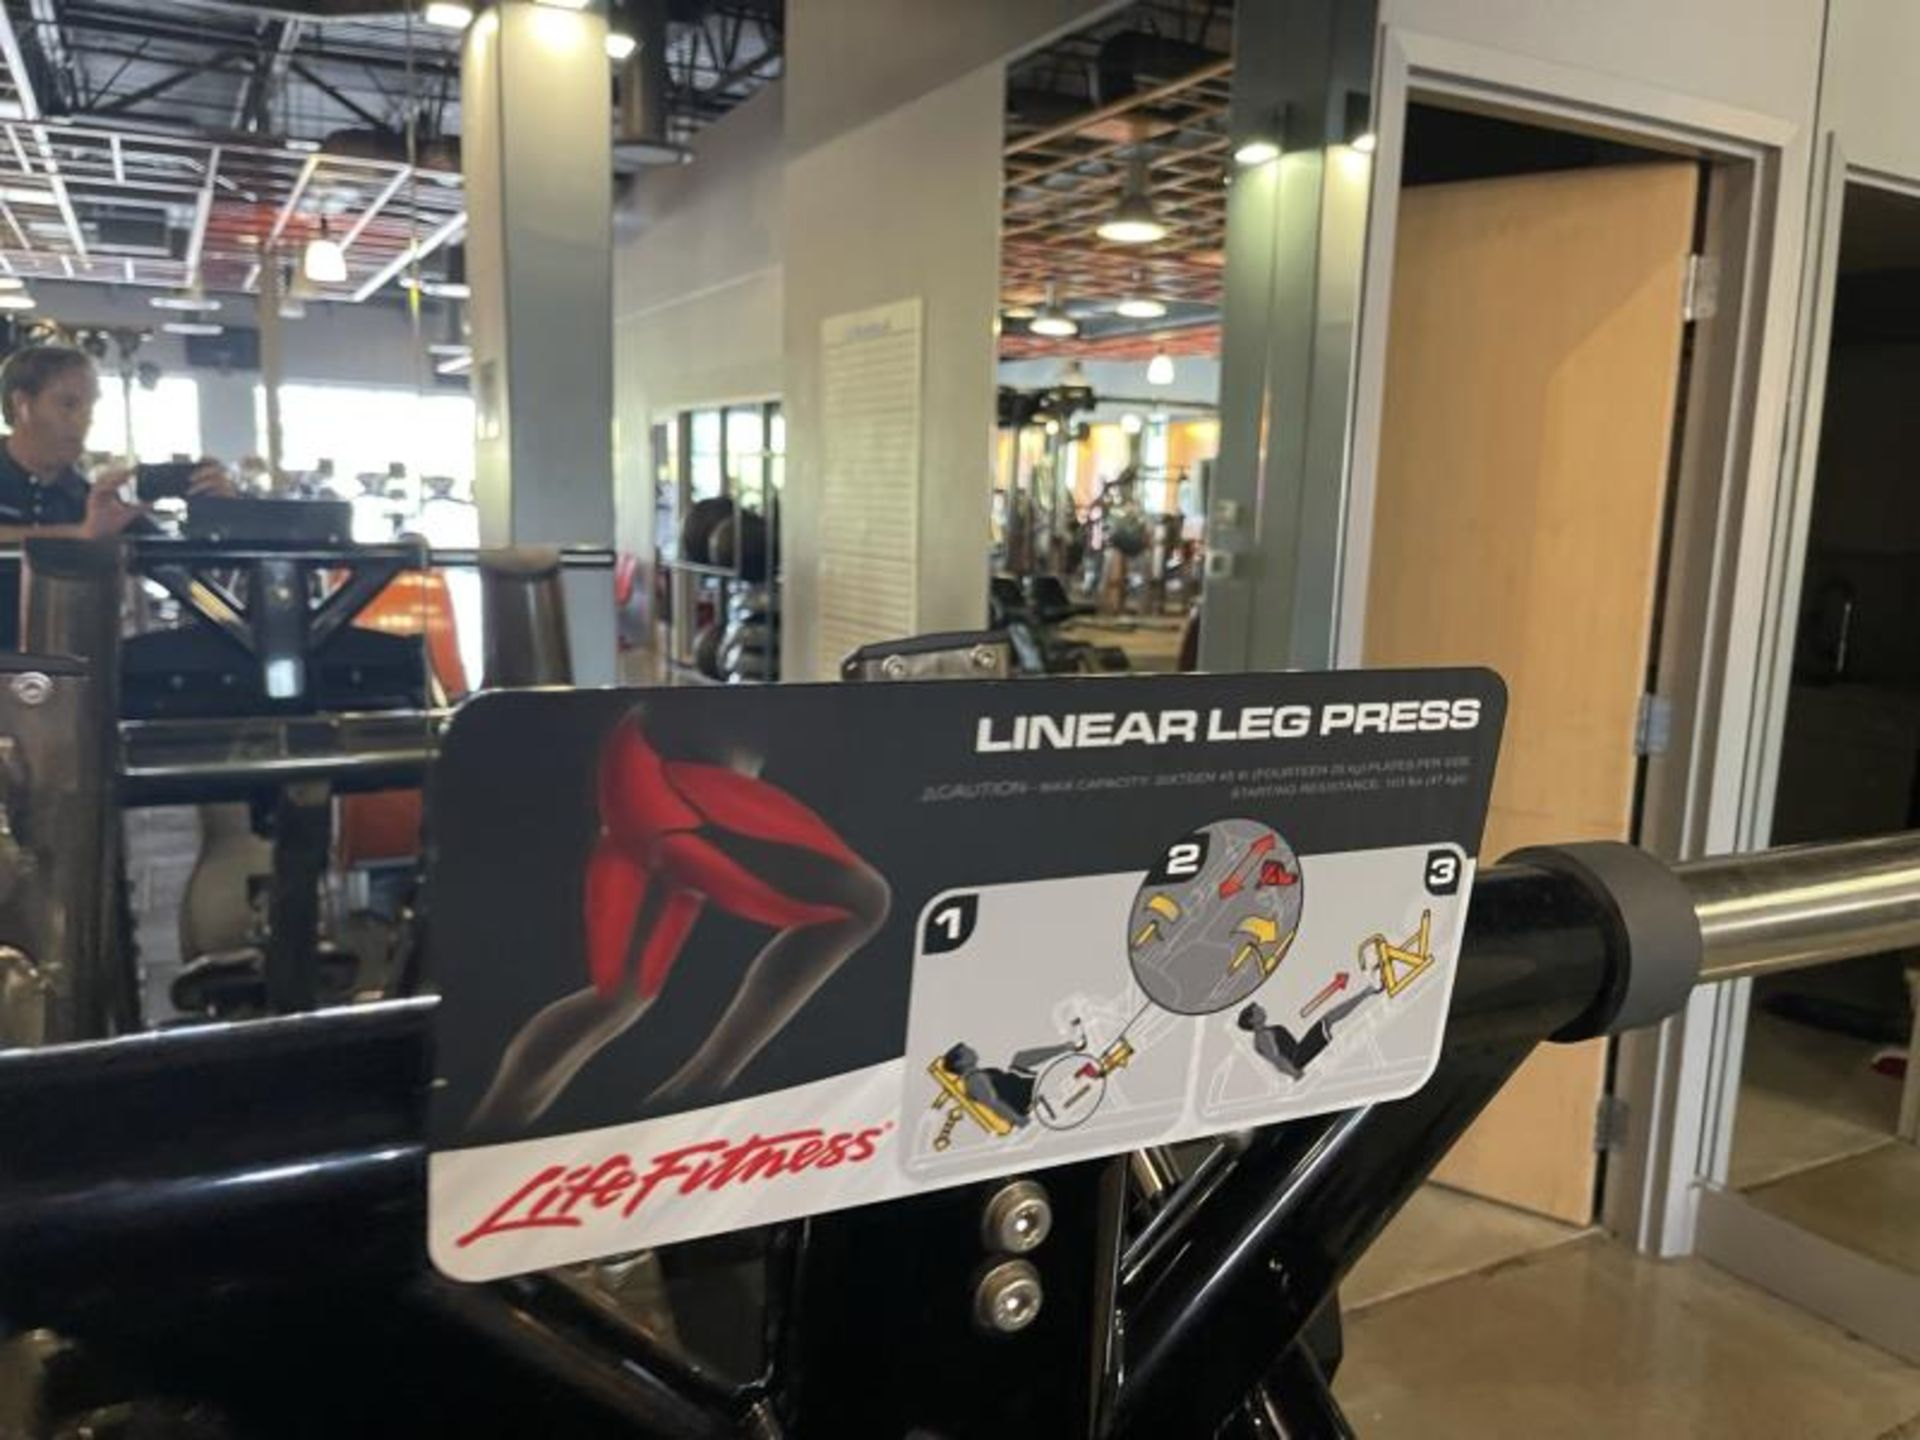 Life Fitness Linear Leg Press with Iron Grip Weighted Plates M: SPLLLP - Image 9 of 9